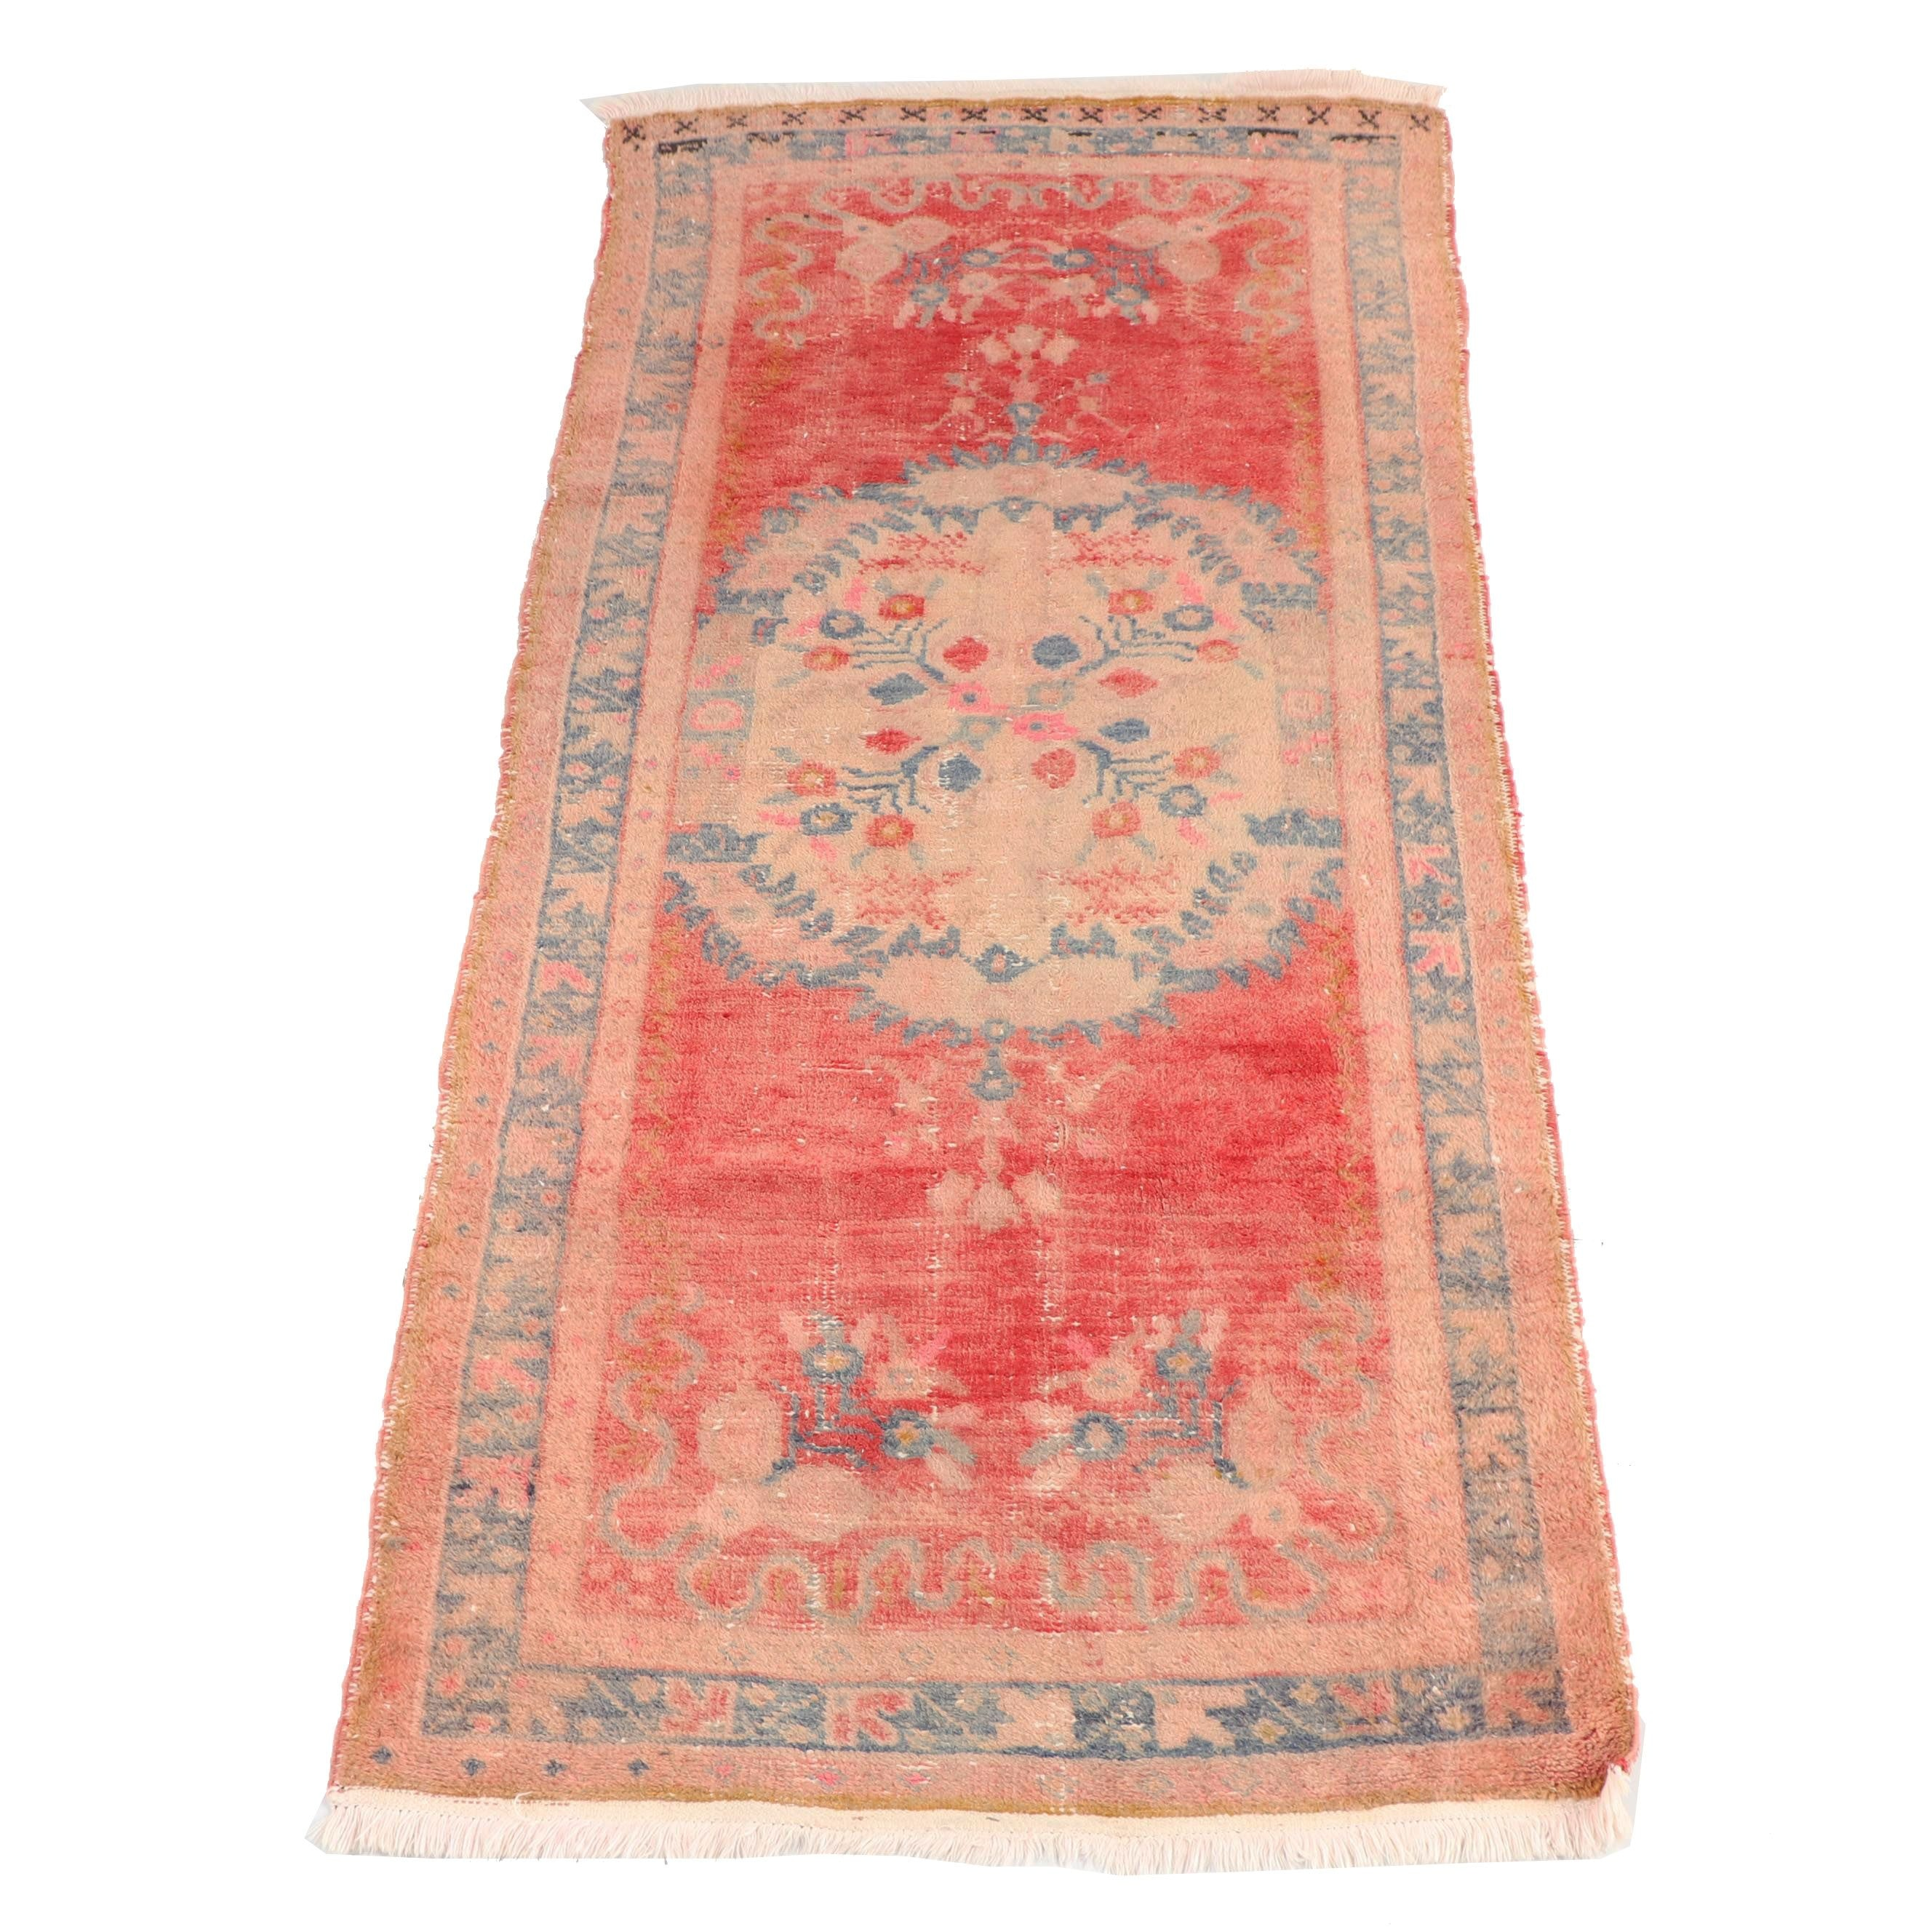 Antique Hand-Knotted Anatolian Wool Long Rug